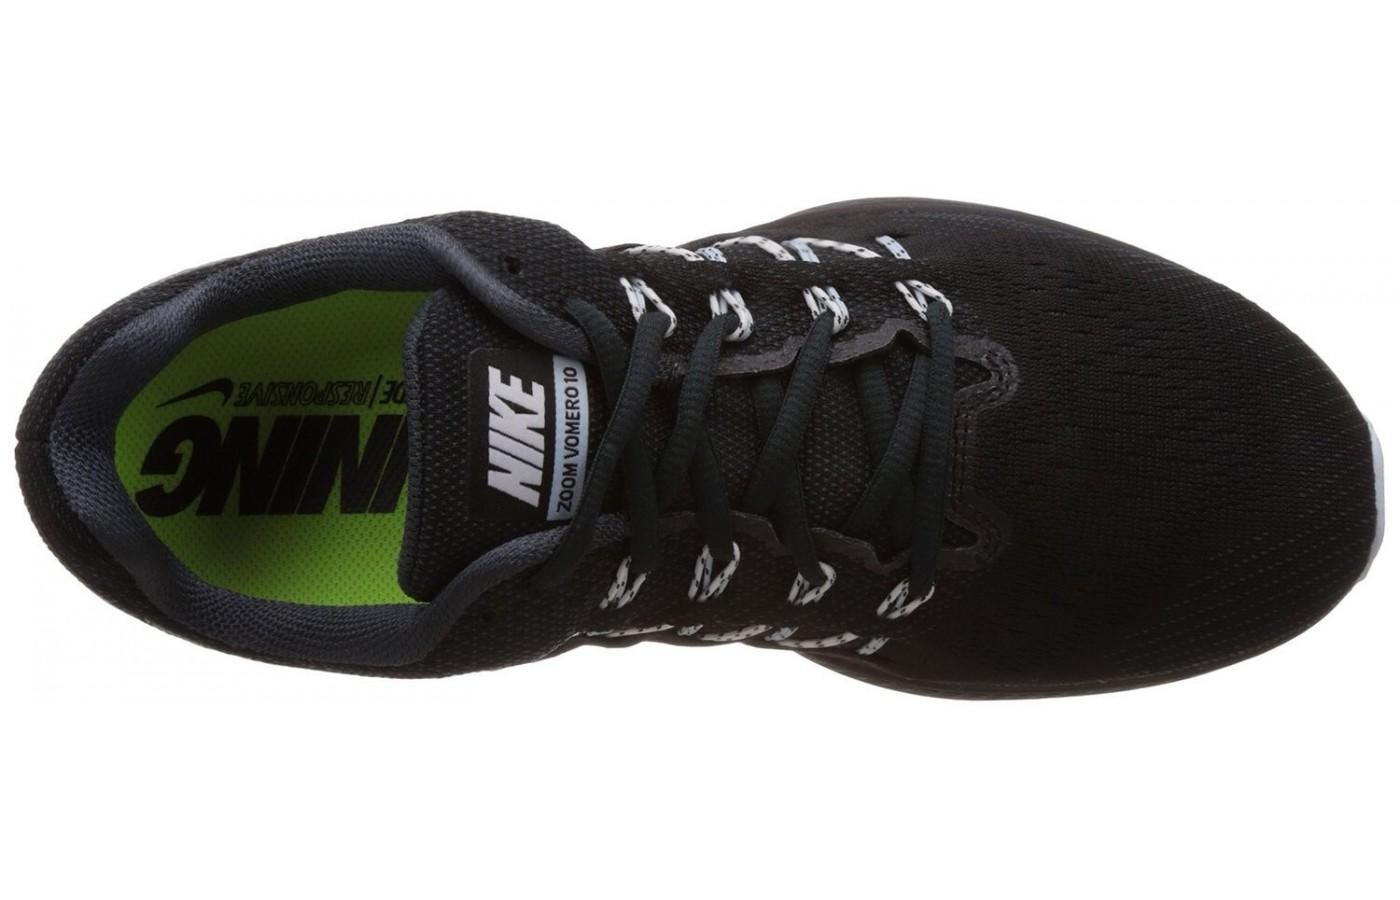 The Nike Air Zoom Vomero 10 uses Flymesh material to provide a lightweight upper.